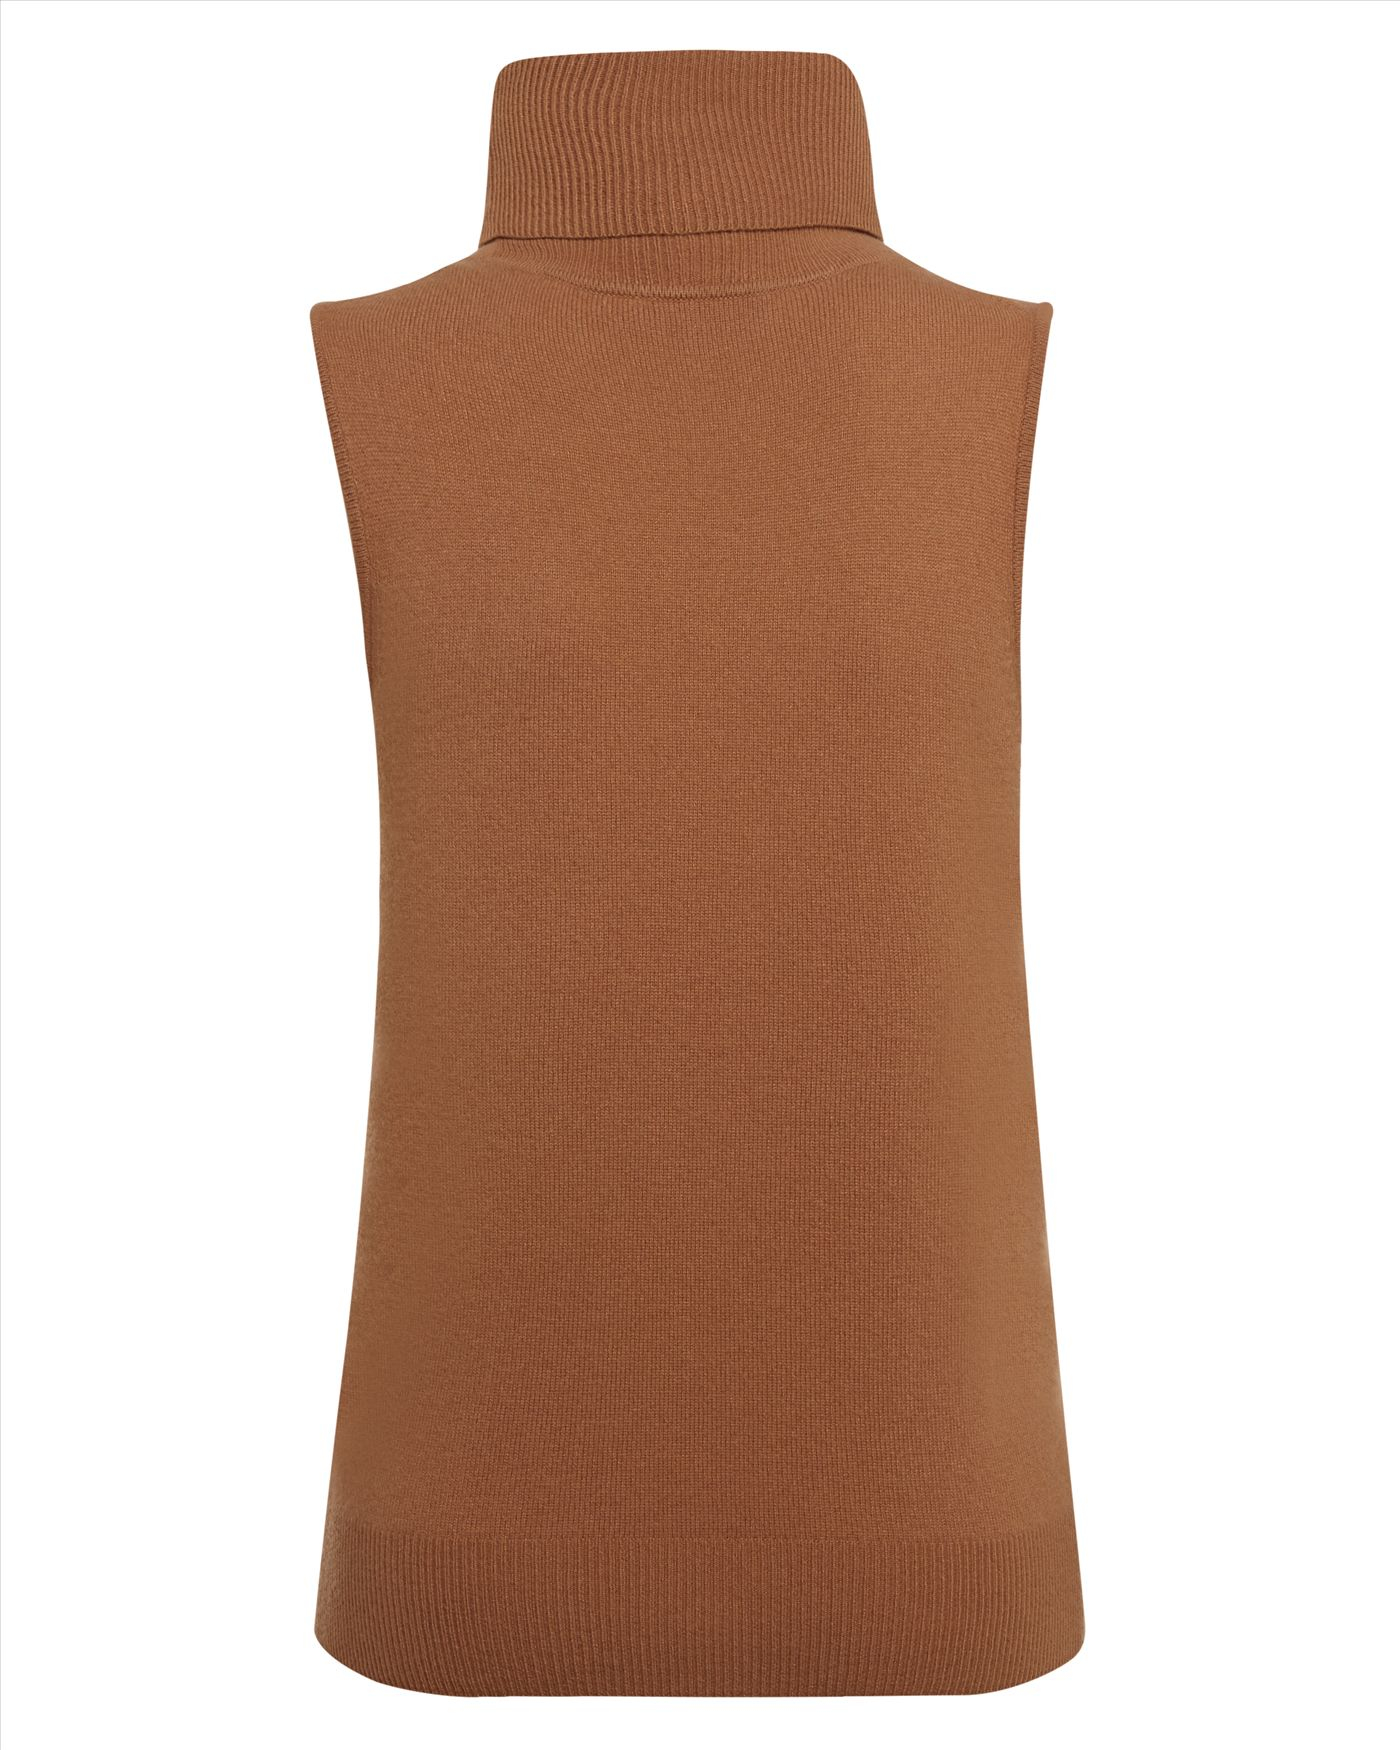 Jaeger cashmere roll neck sweater in brown lyst